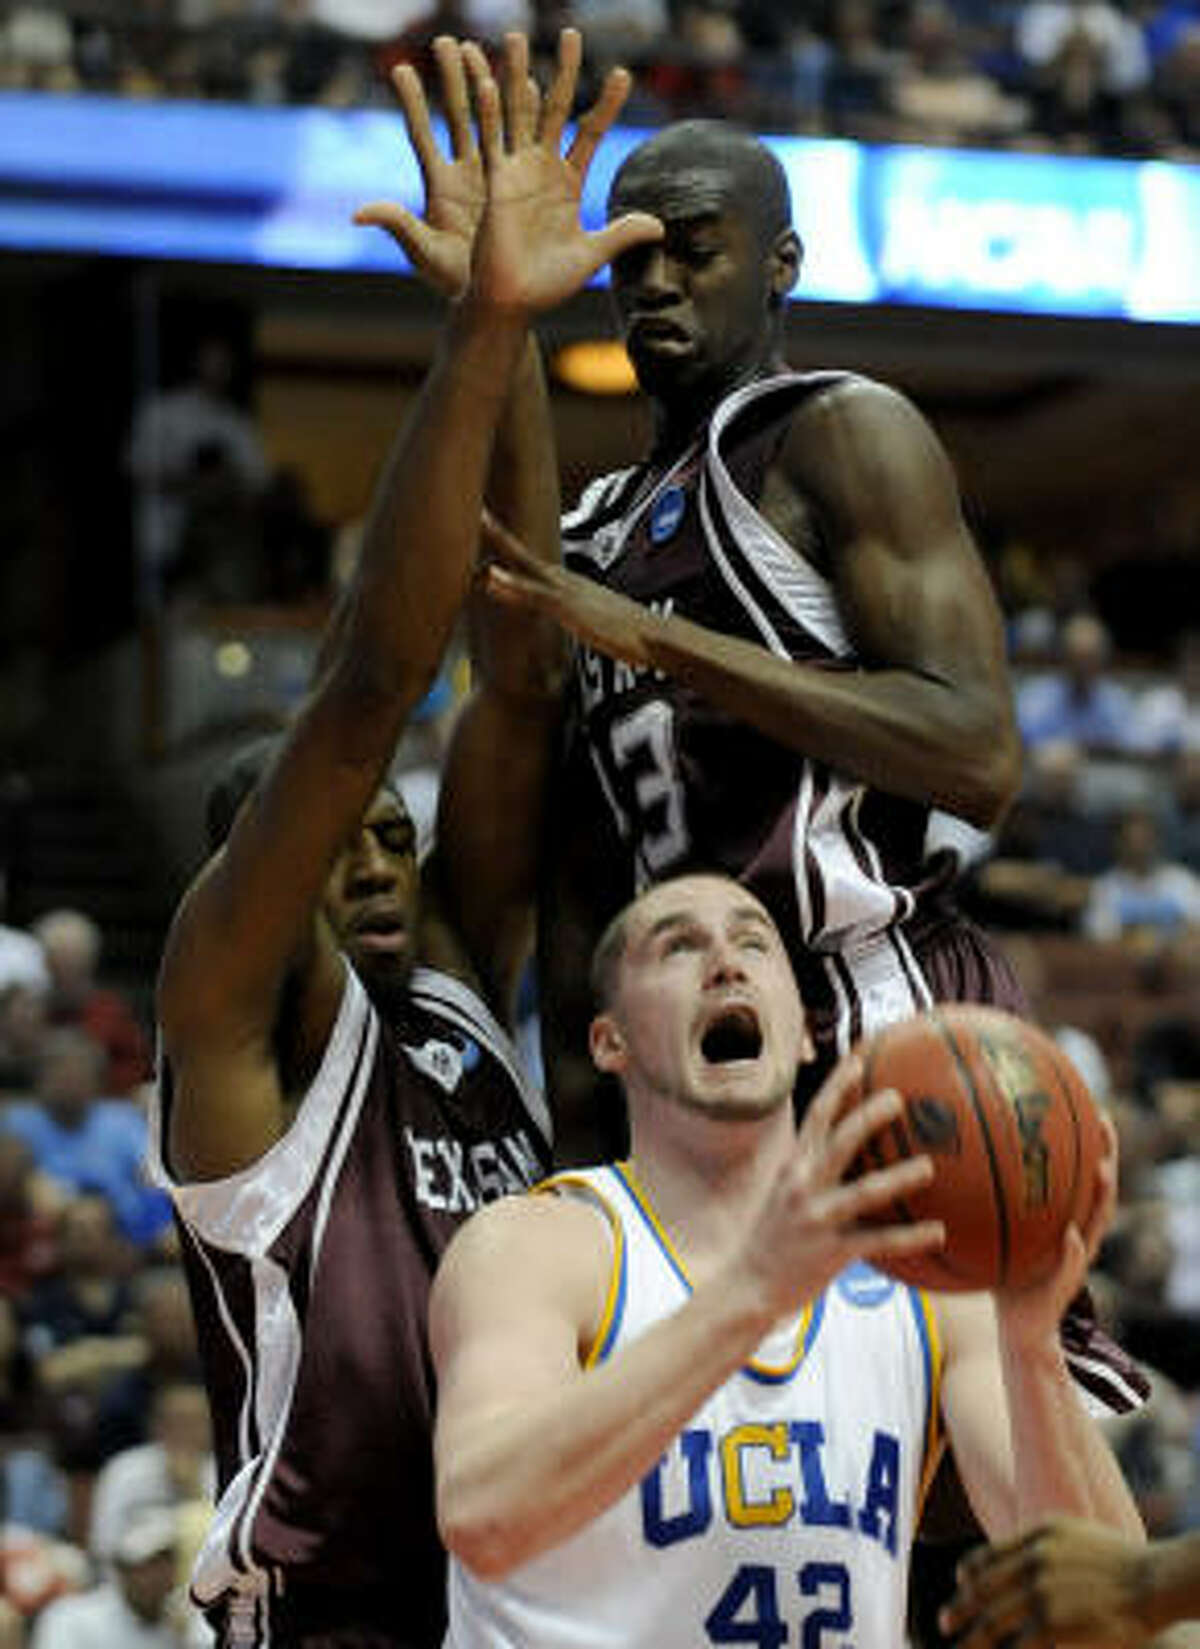 UCLA's Kevin Love looks to avoid A&M's Chinemelu Elonu and Josh Carter on his way to the basket during the first half.